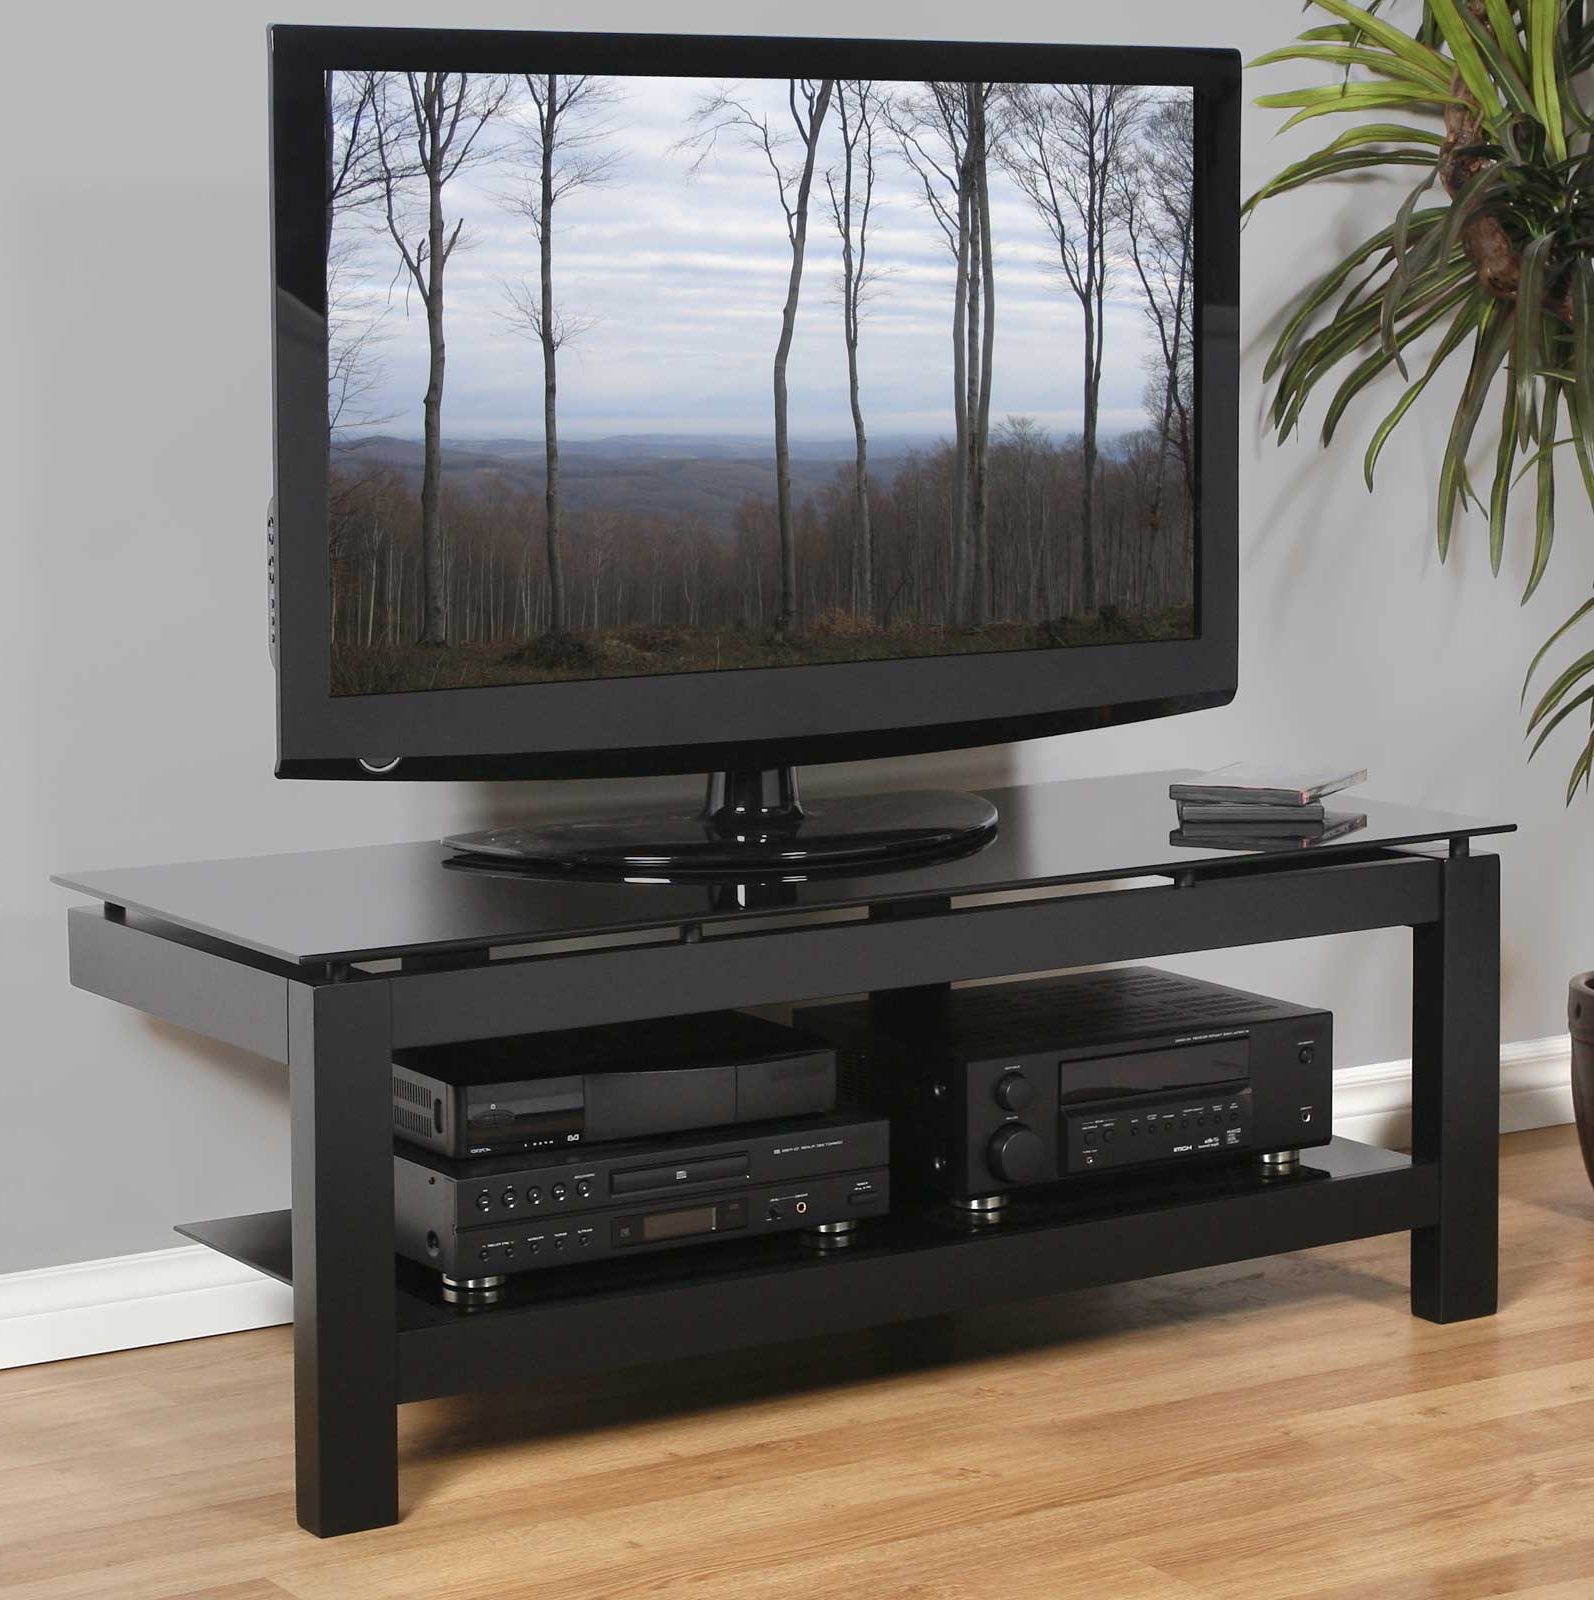 Low Profile 50 Inch Tv Stand – Black In Tv Stands Inside Modern Black Floor Glass Tv Stands For Tvs Up To 70 Inch (View 15 of 20)